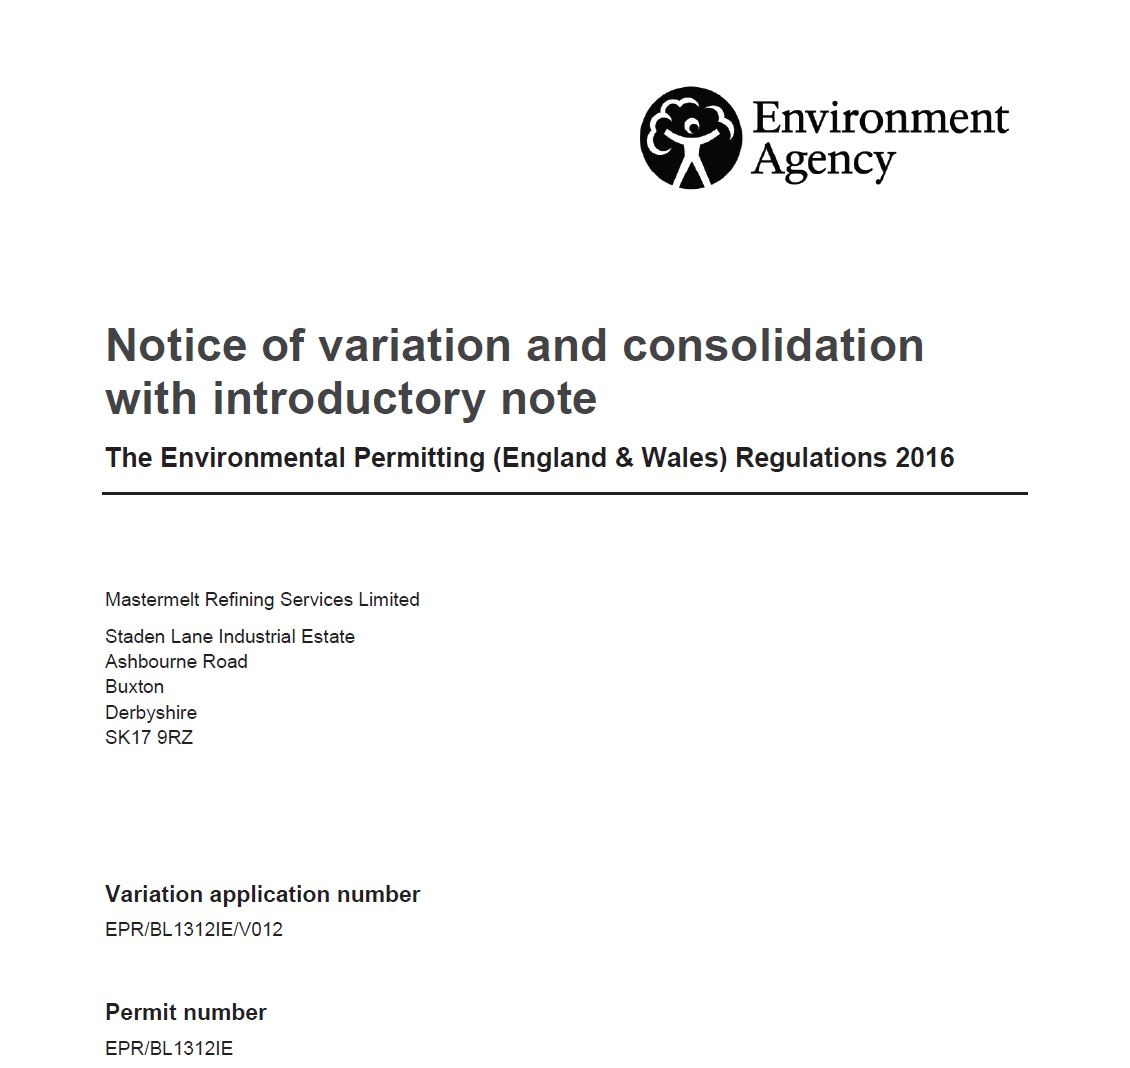 Refining – Issue of Variation Notice EPR/BL1312IE/V012